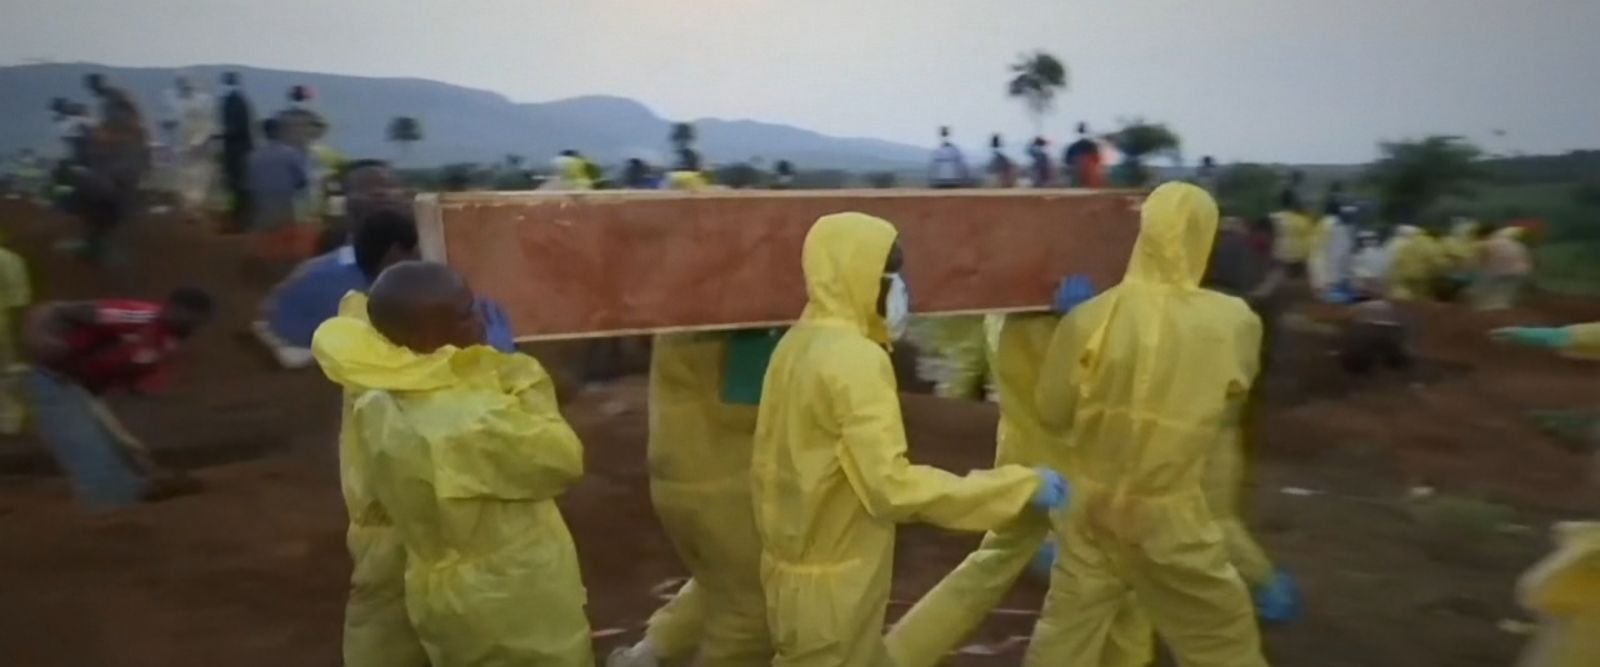 The U.N. humanitarian agency put the death toll at 409 after the flooding and mudslides in the West African nation's capital, Freetown, on Monday morning.